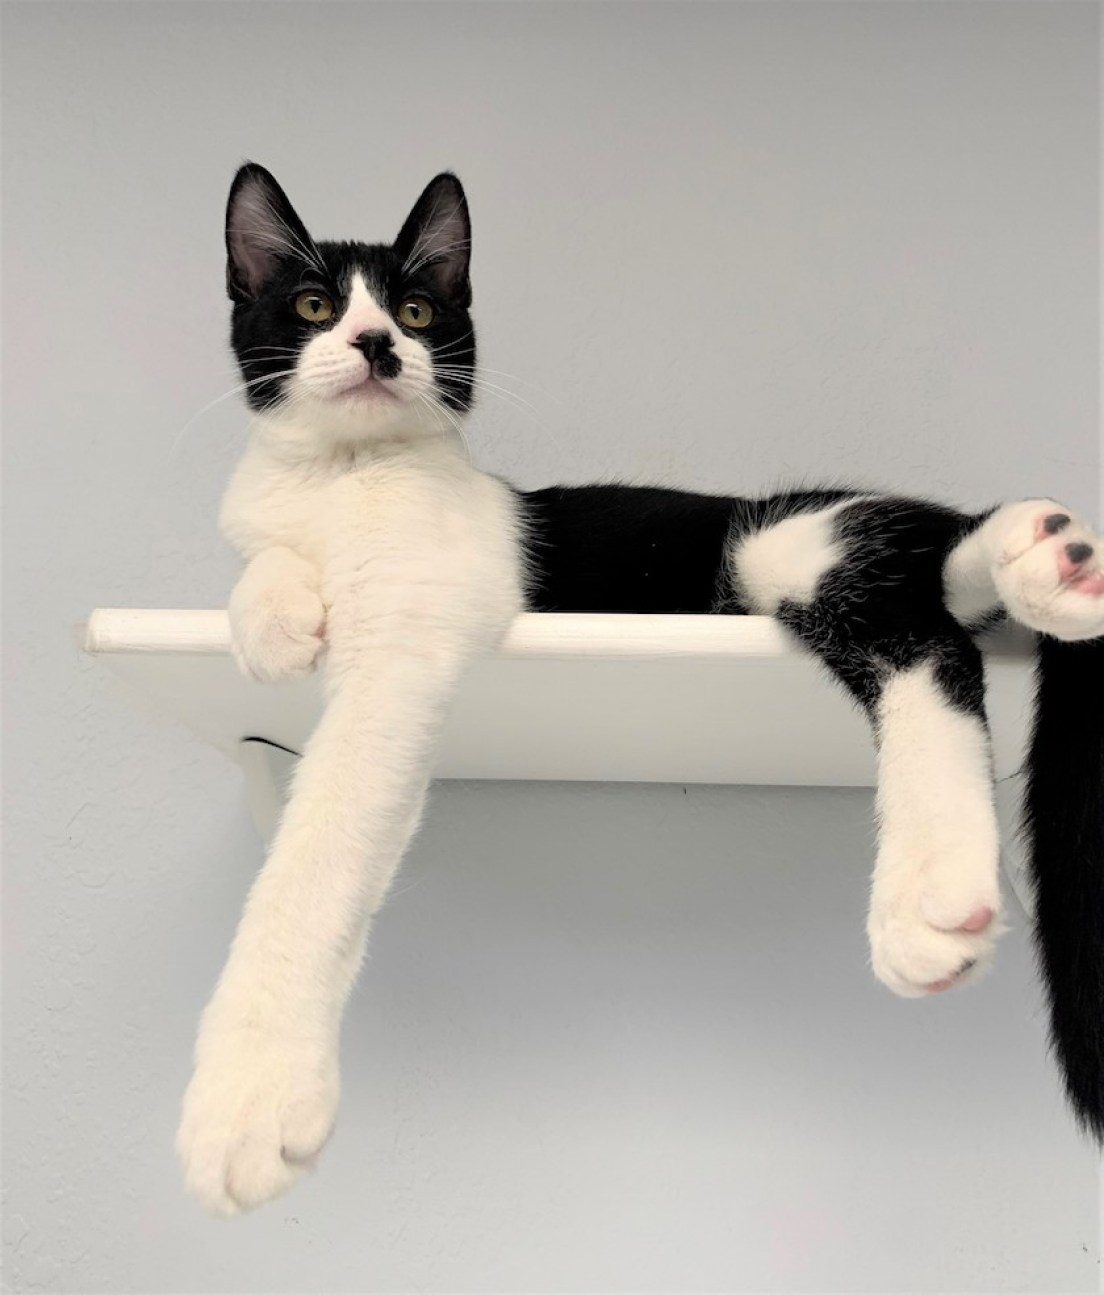 A black and white cat sitting on a top shelf.